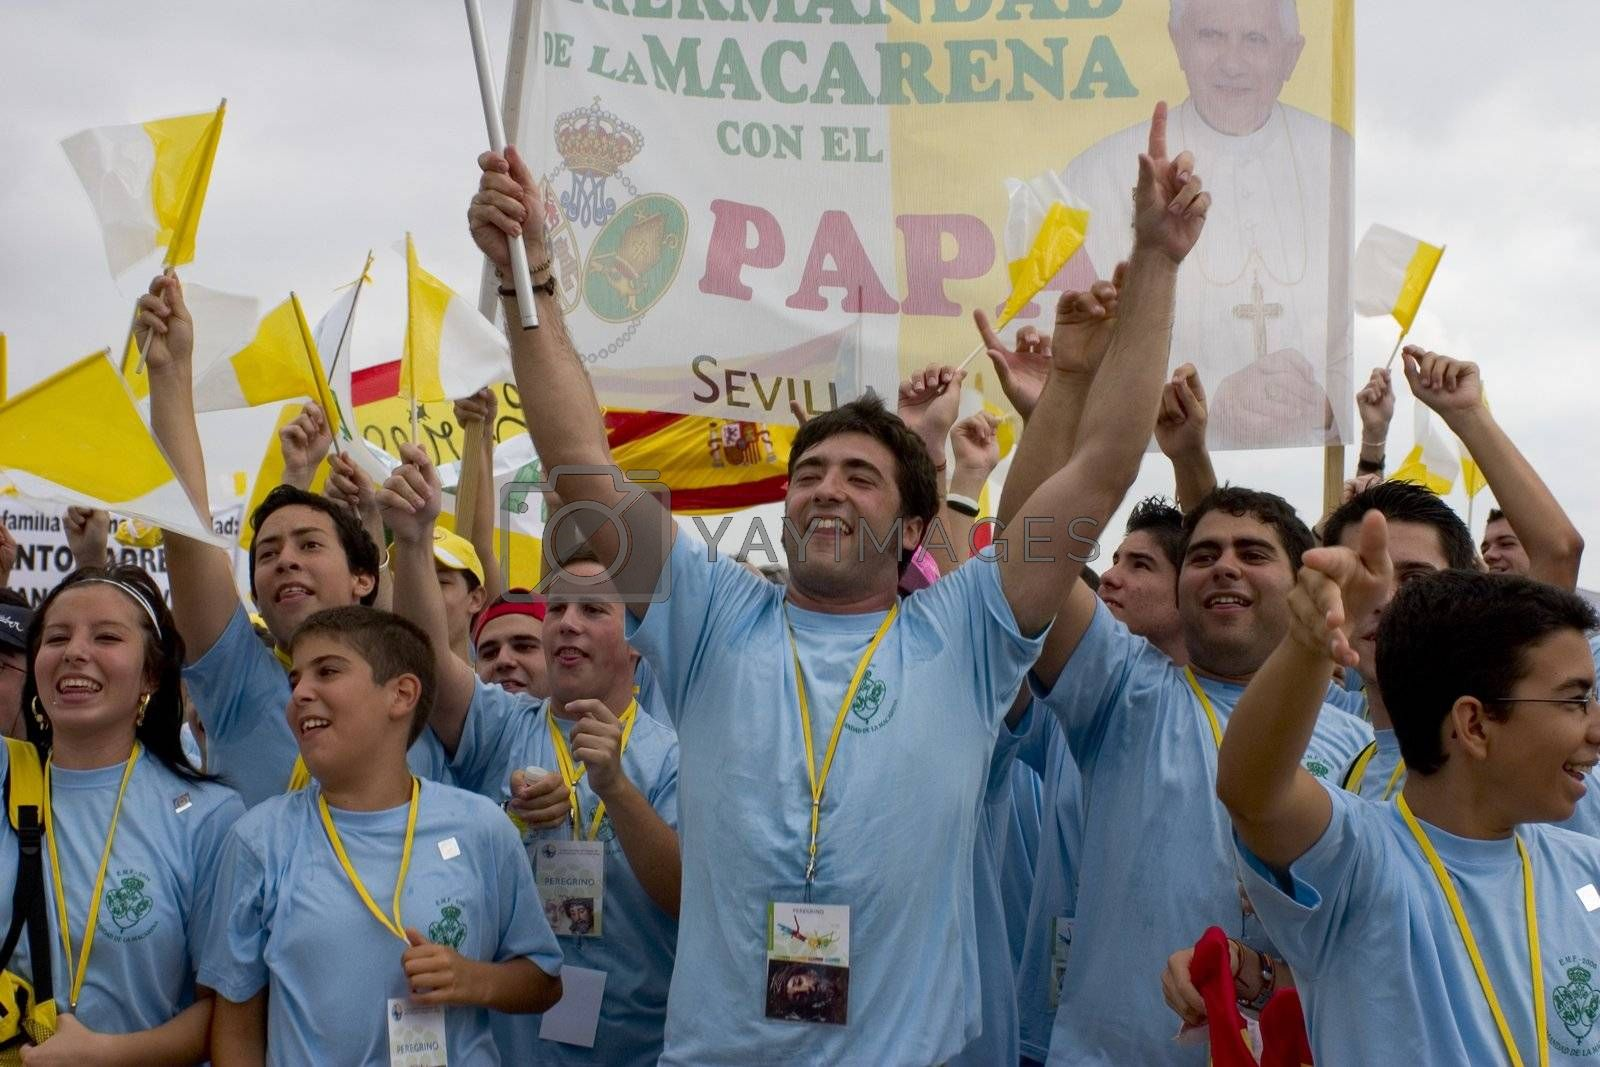 The crowd at the Pope Visit in Valencia, Spain.